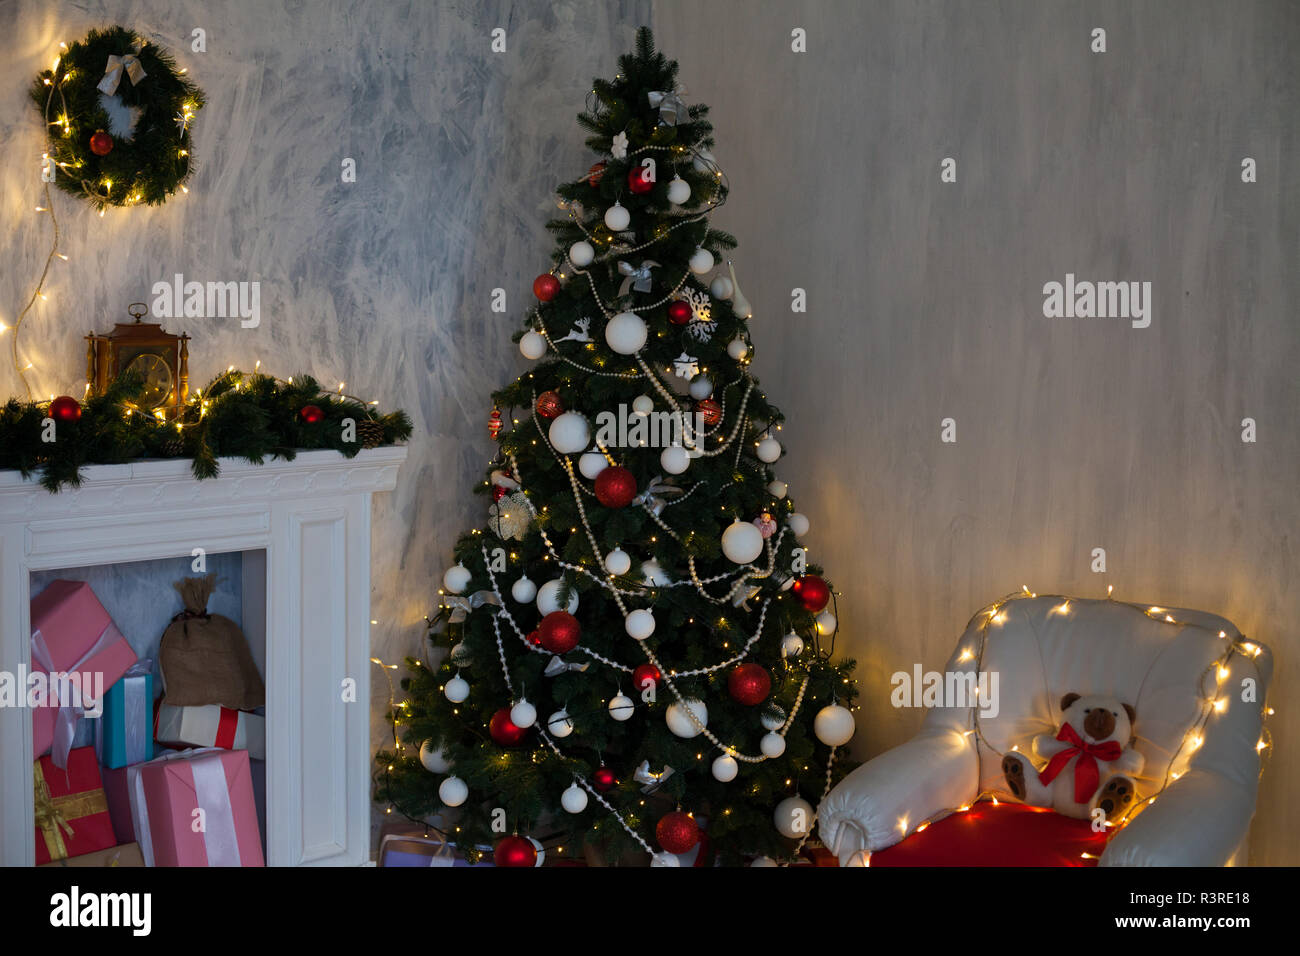 Christmas 2019 2020 winter Christmas bedroom bedholiday gifts new year 2019 2020 Stock